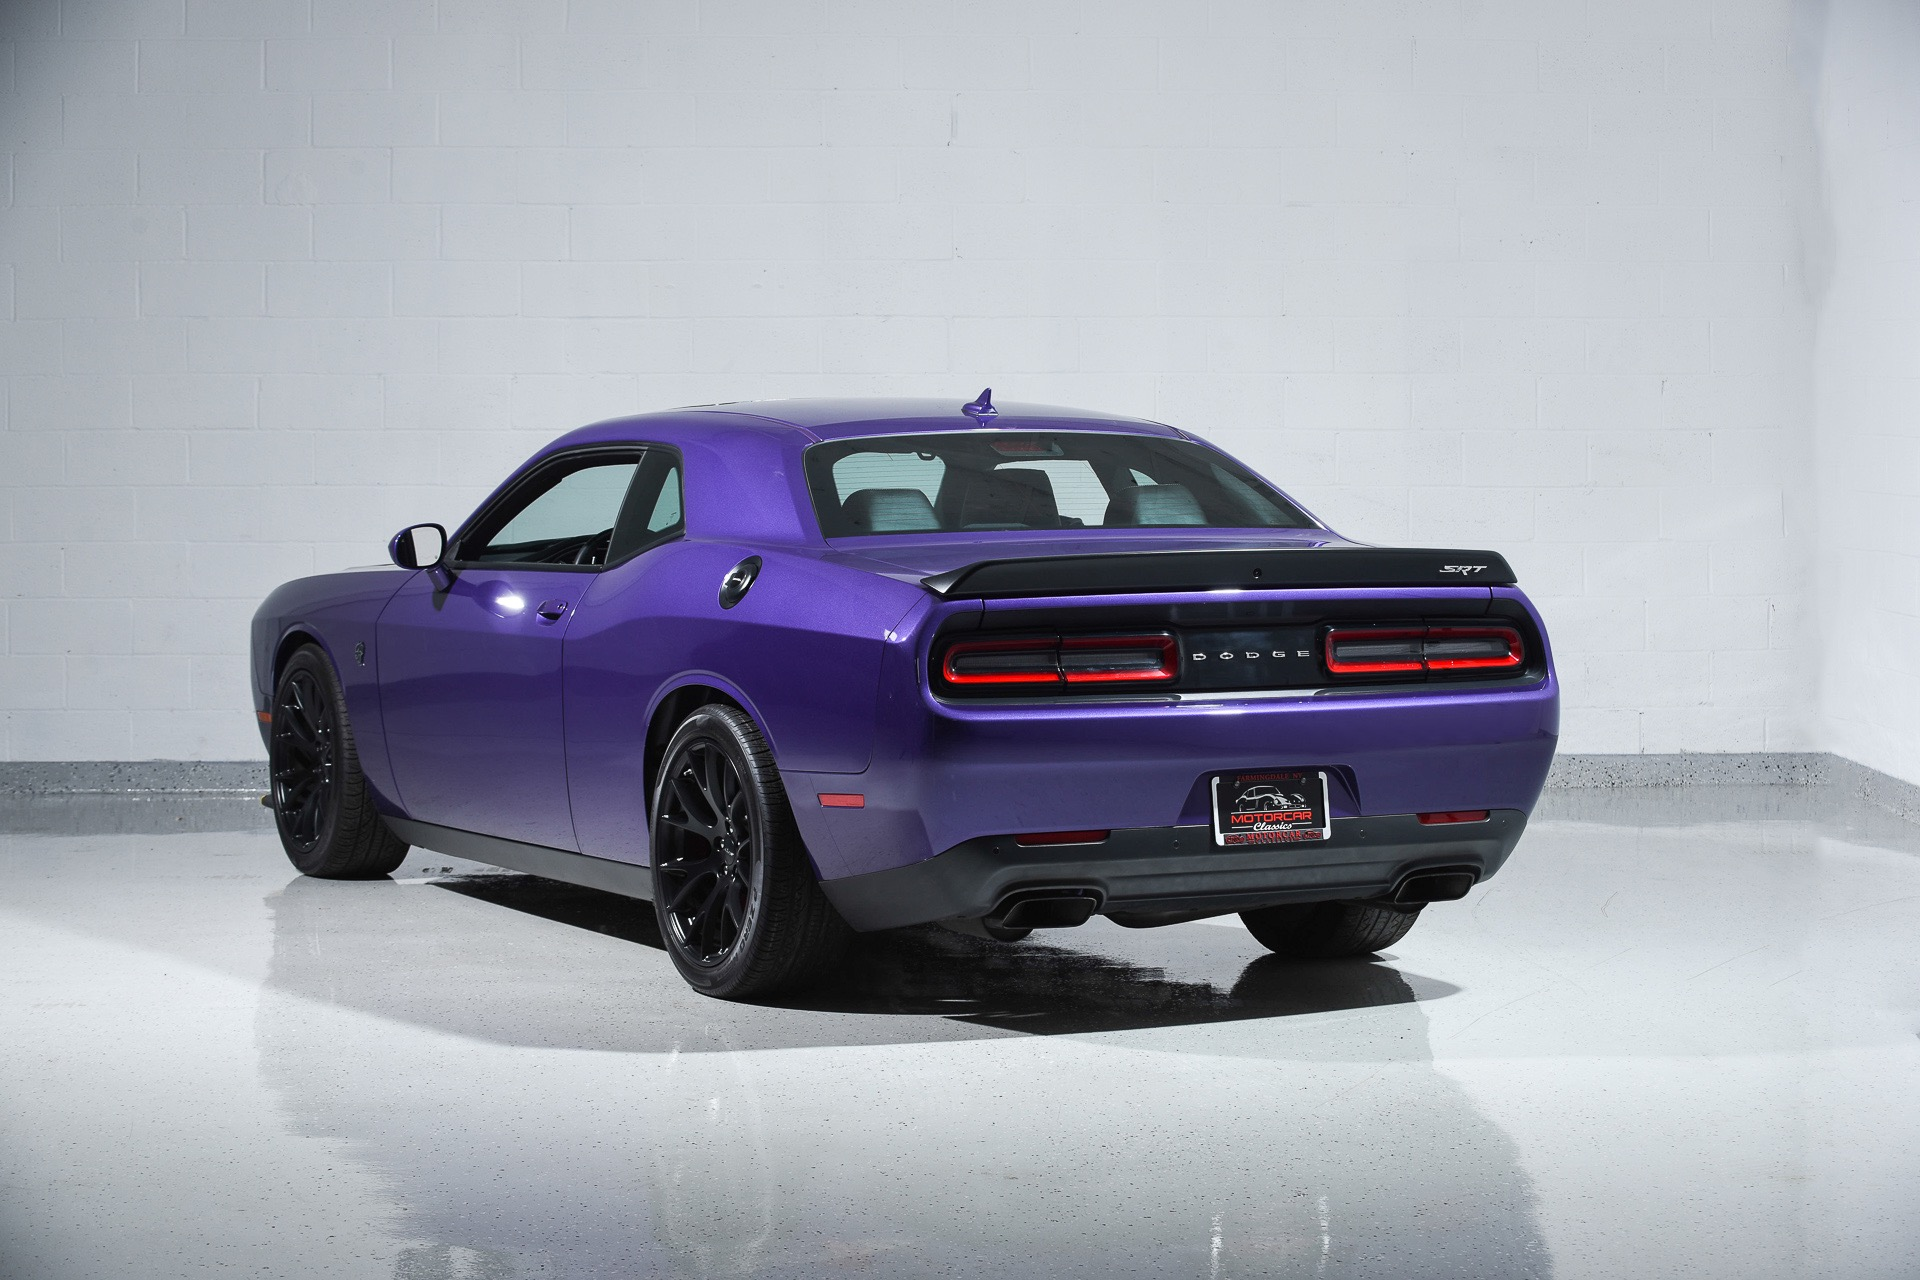 used dodge challenger srt hellcat rwd for sale from - HD1920×1280